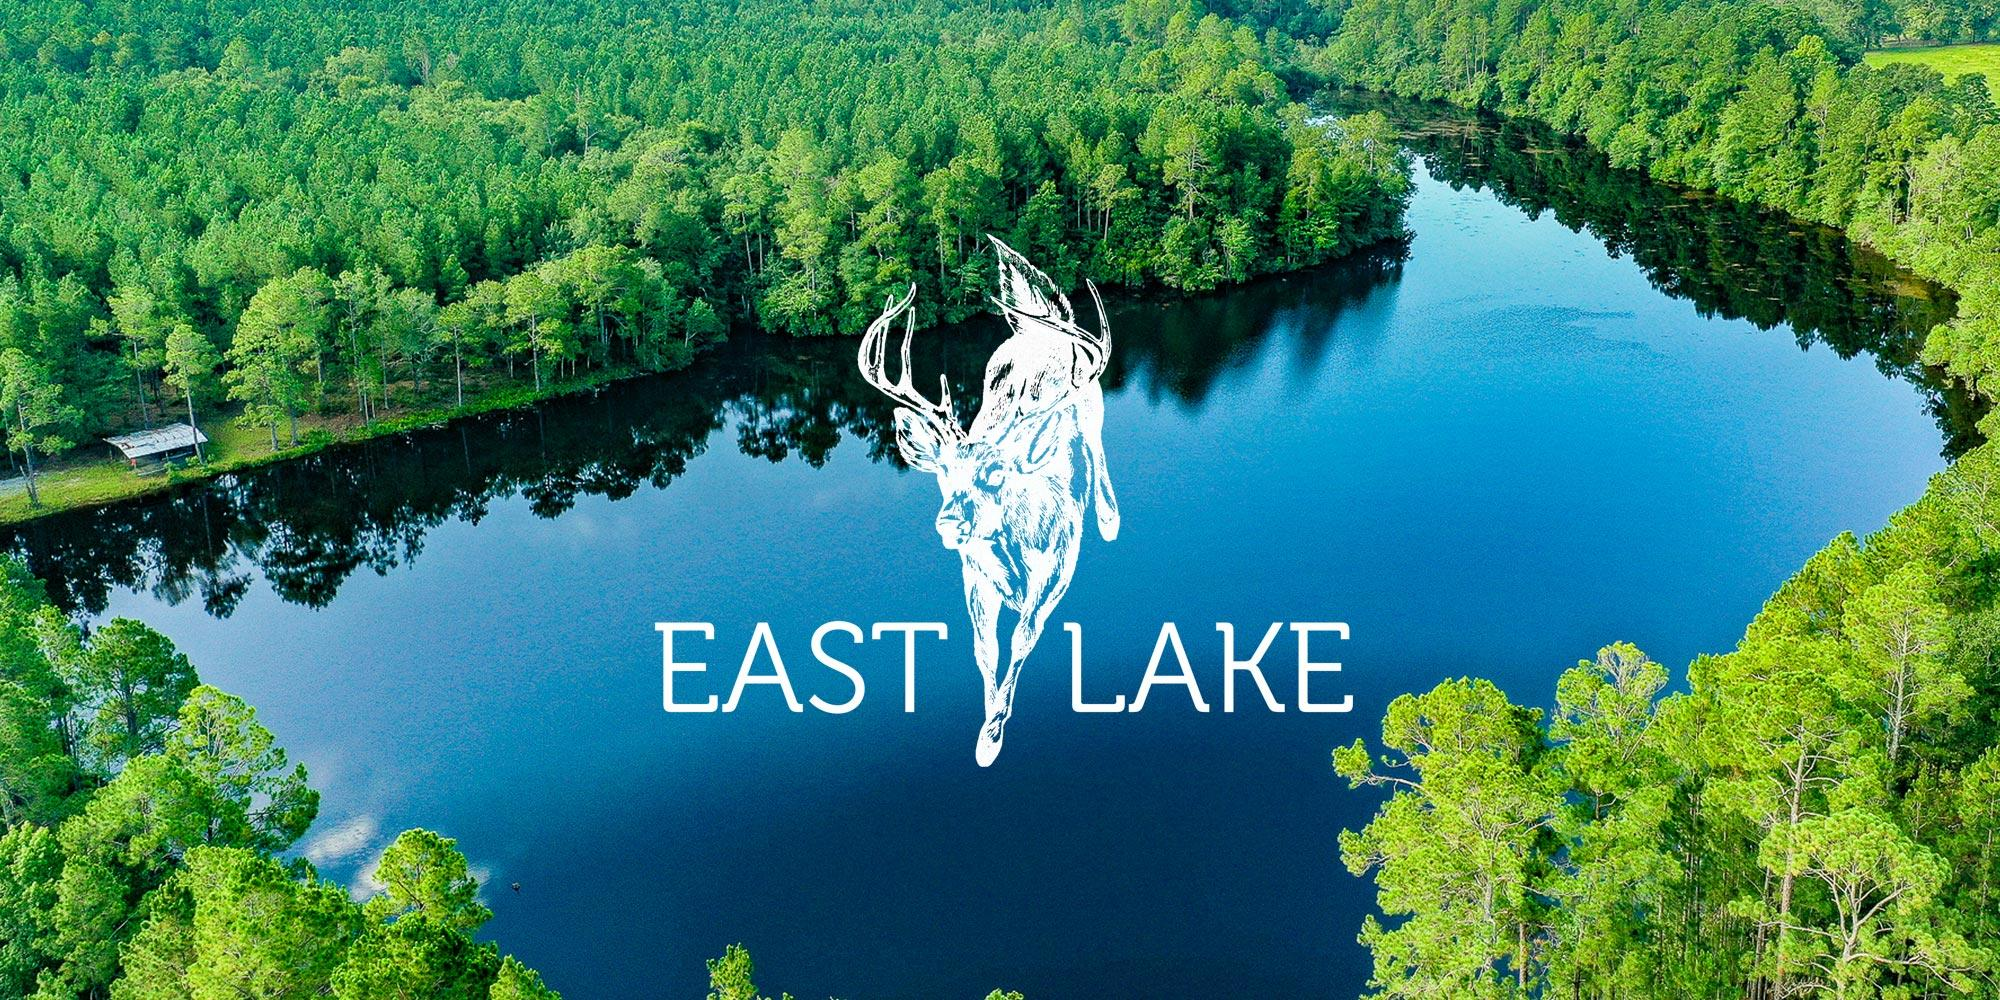 East Lake Timberland Plantation and Recreational Dream - article image